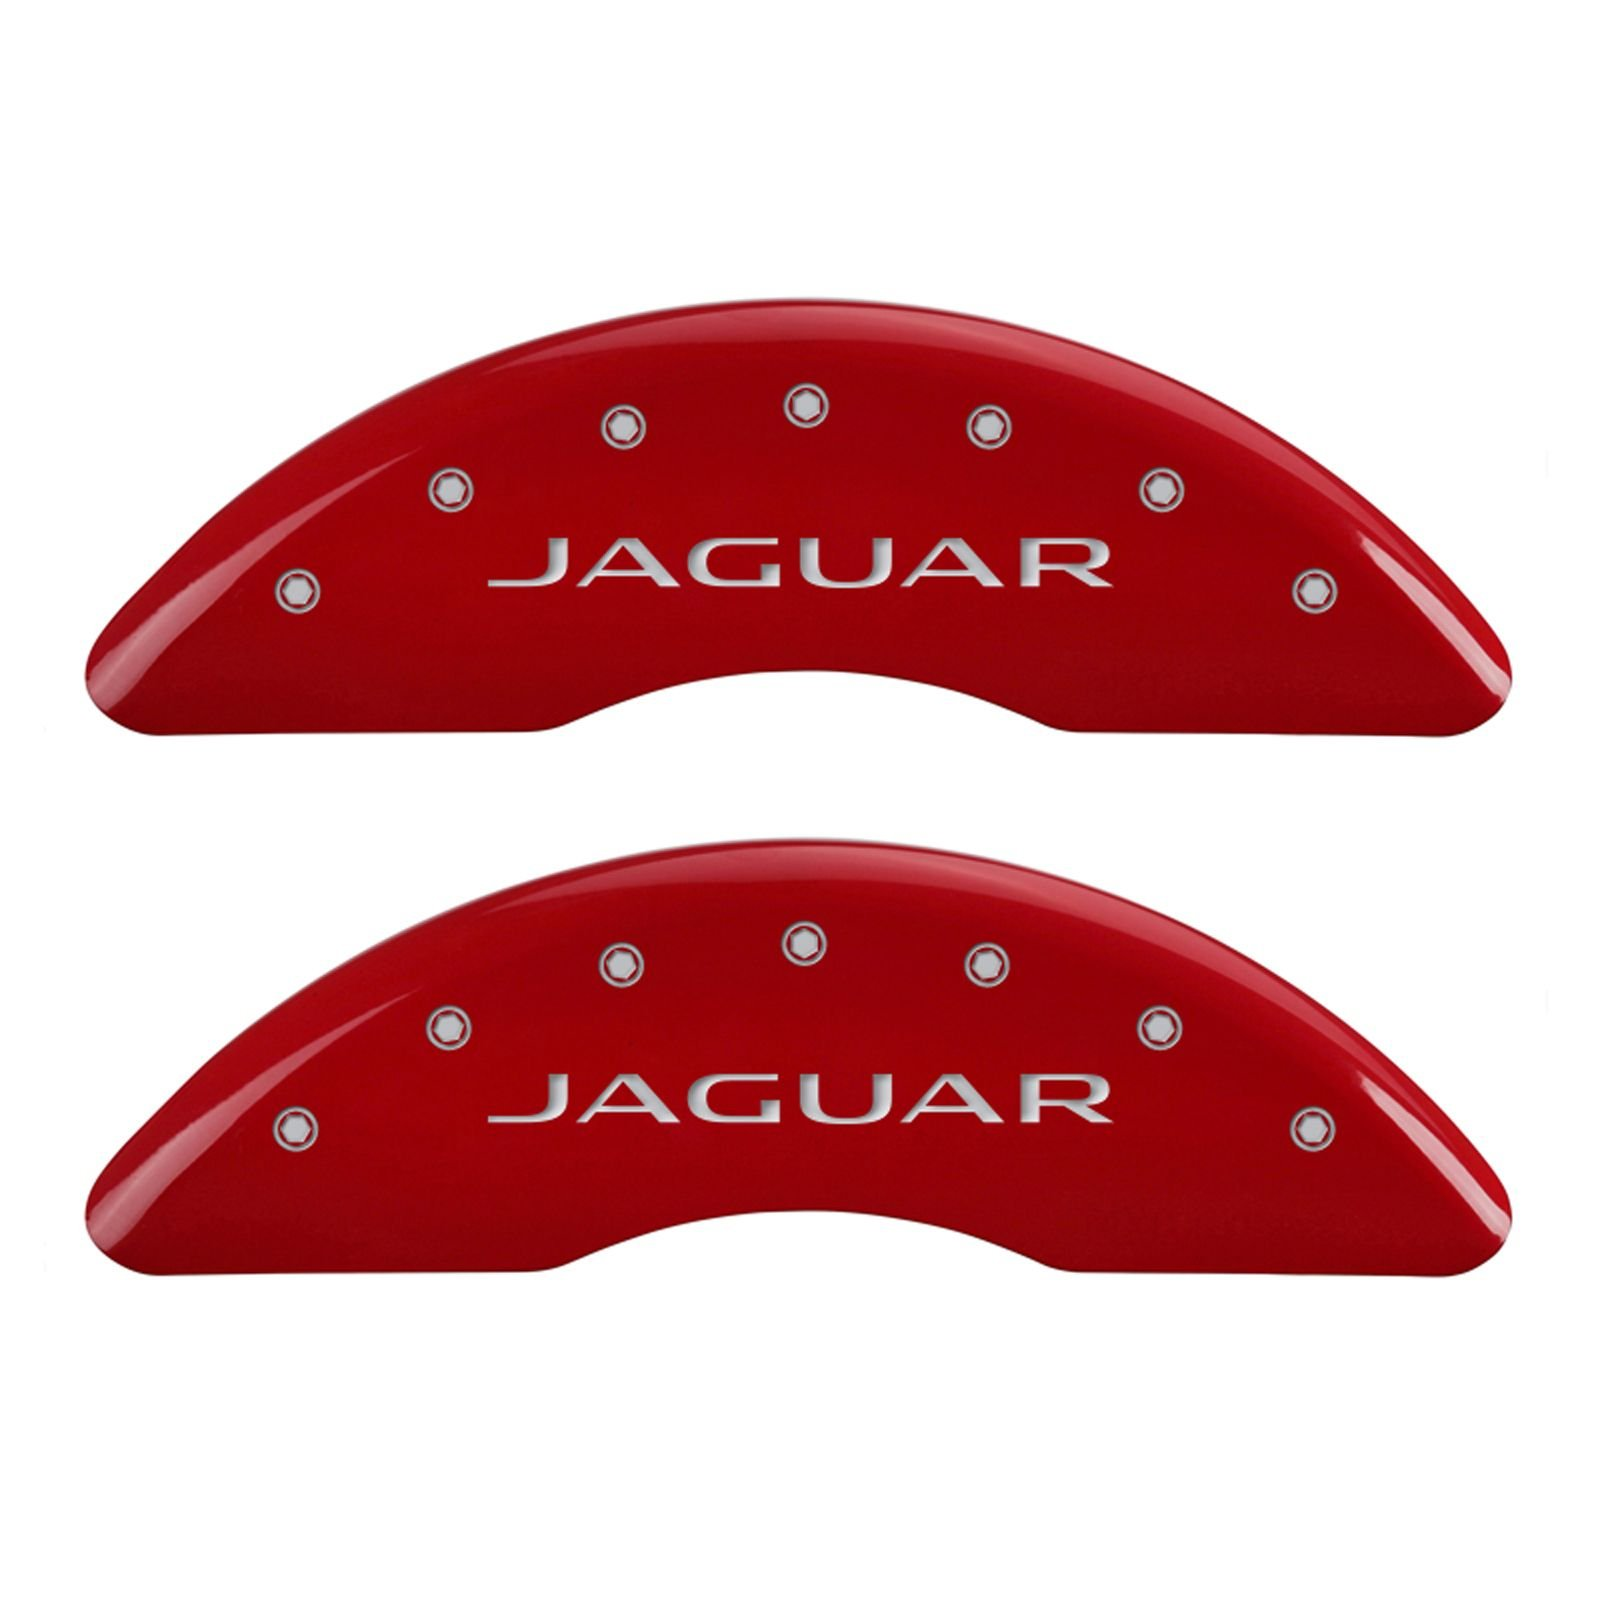 MGP Caliper Covers 41110SJGRRD Red Caliper Cover, Set of 4 (Engraved Front: JAGUAR - Engraved Rear: JAGUAR/2012 silver characters. (41110SJGRRD).)